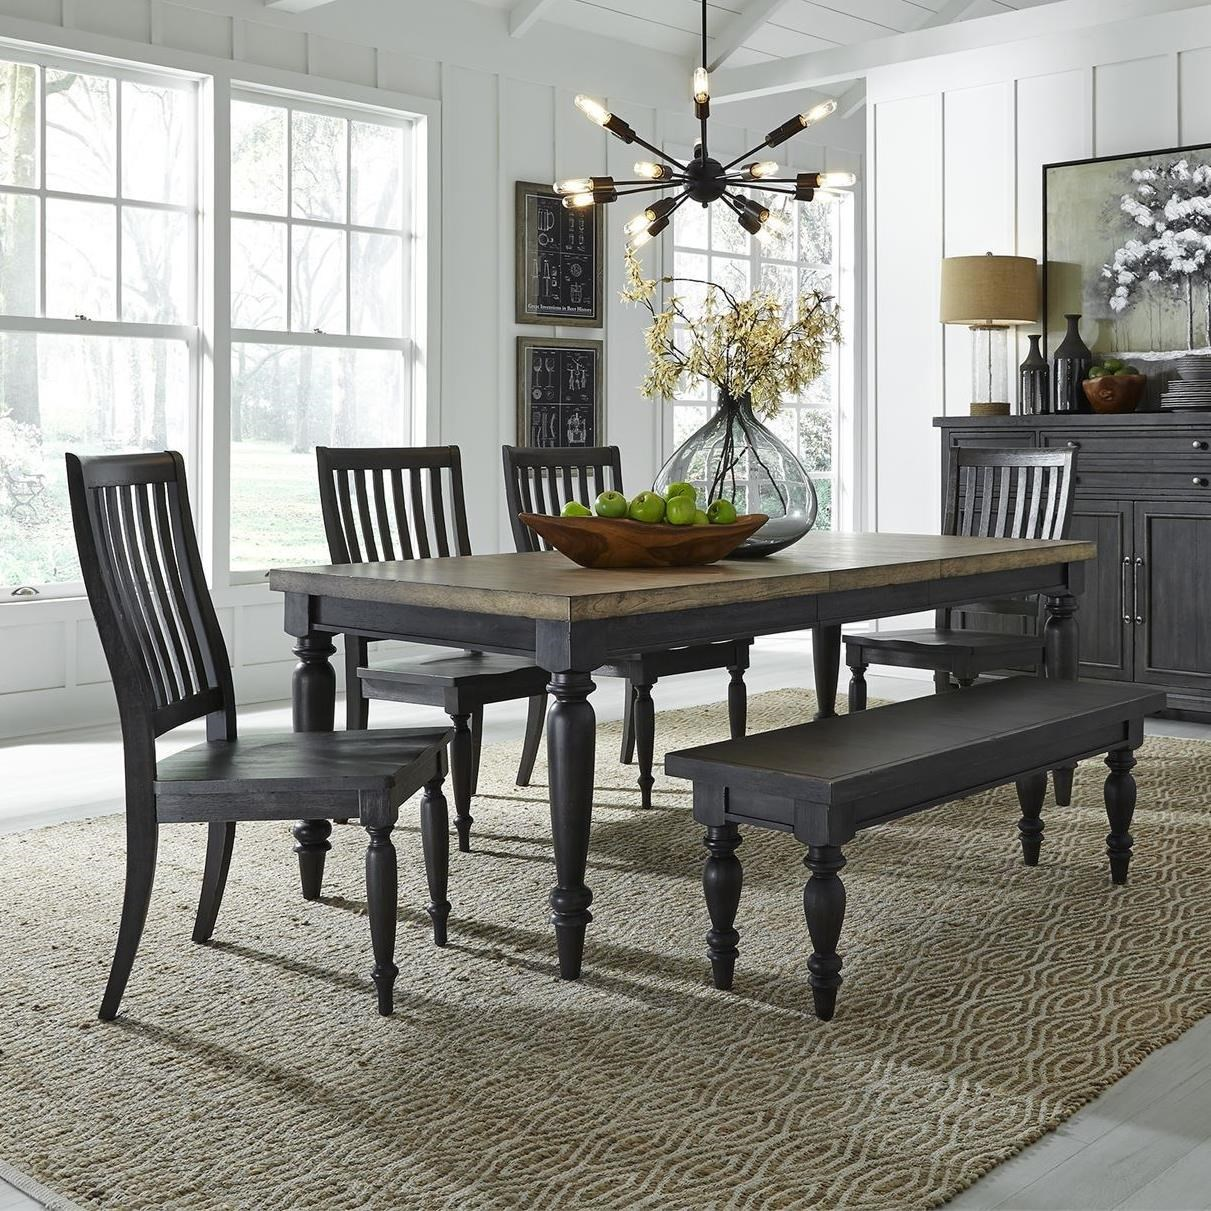 Harvest Home 6-Piece Rectangular Table Set by Liberty Furniture at SuperStore